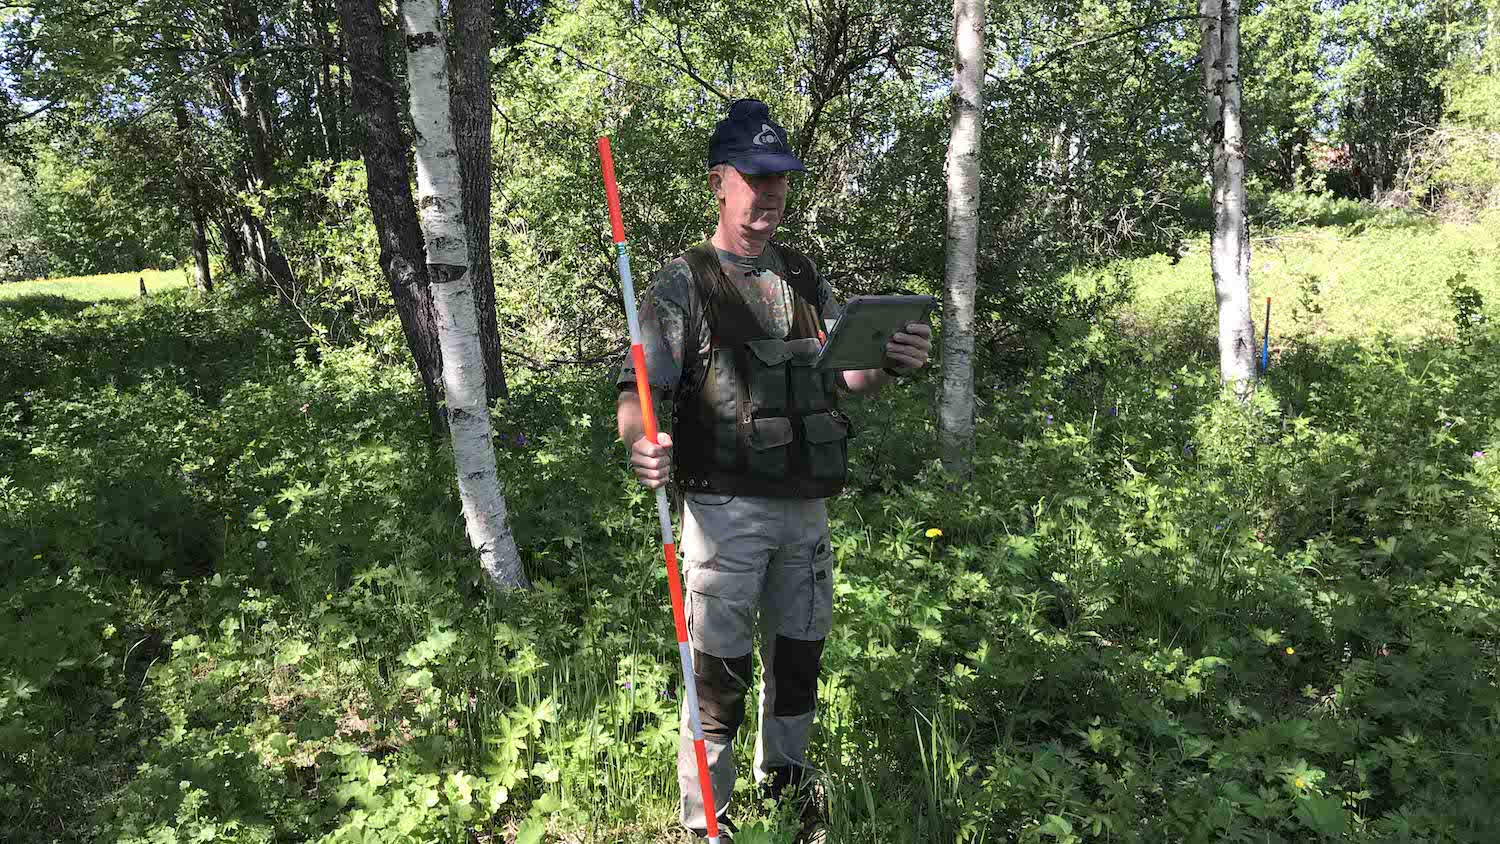 Håkan Bergstedt maps Swedish property markers using Arrow 100 GNSS and ArcGIS on iPad